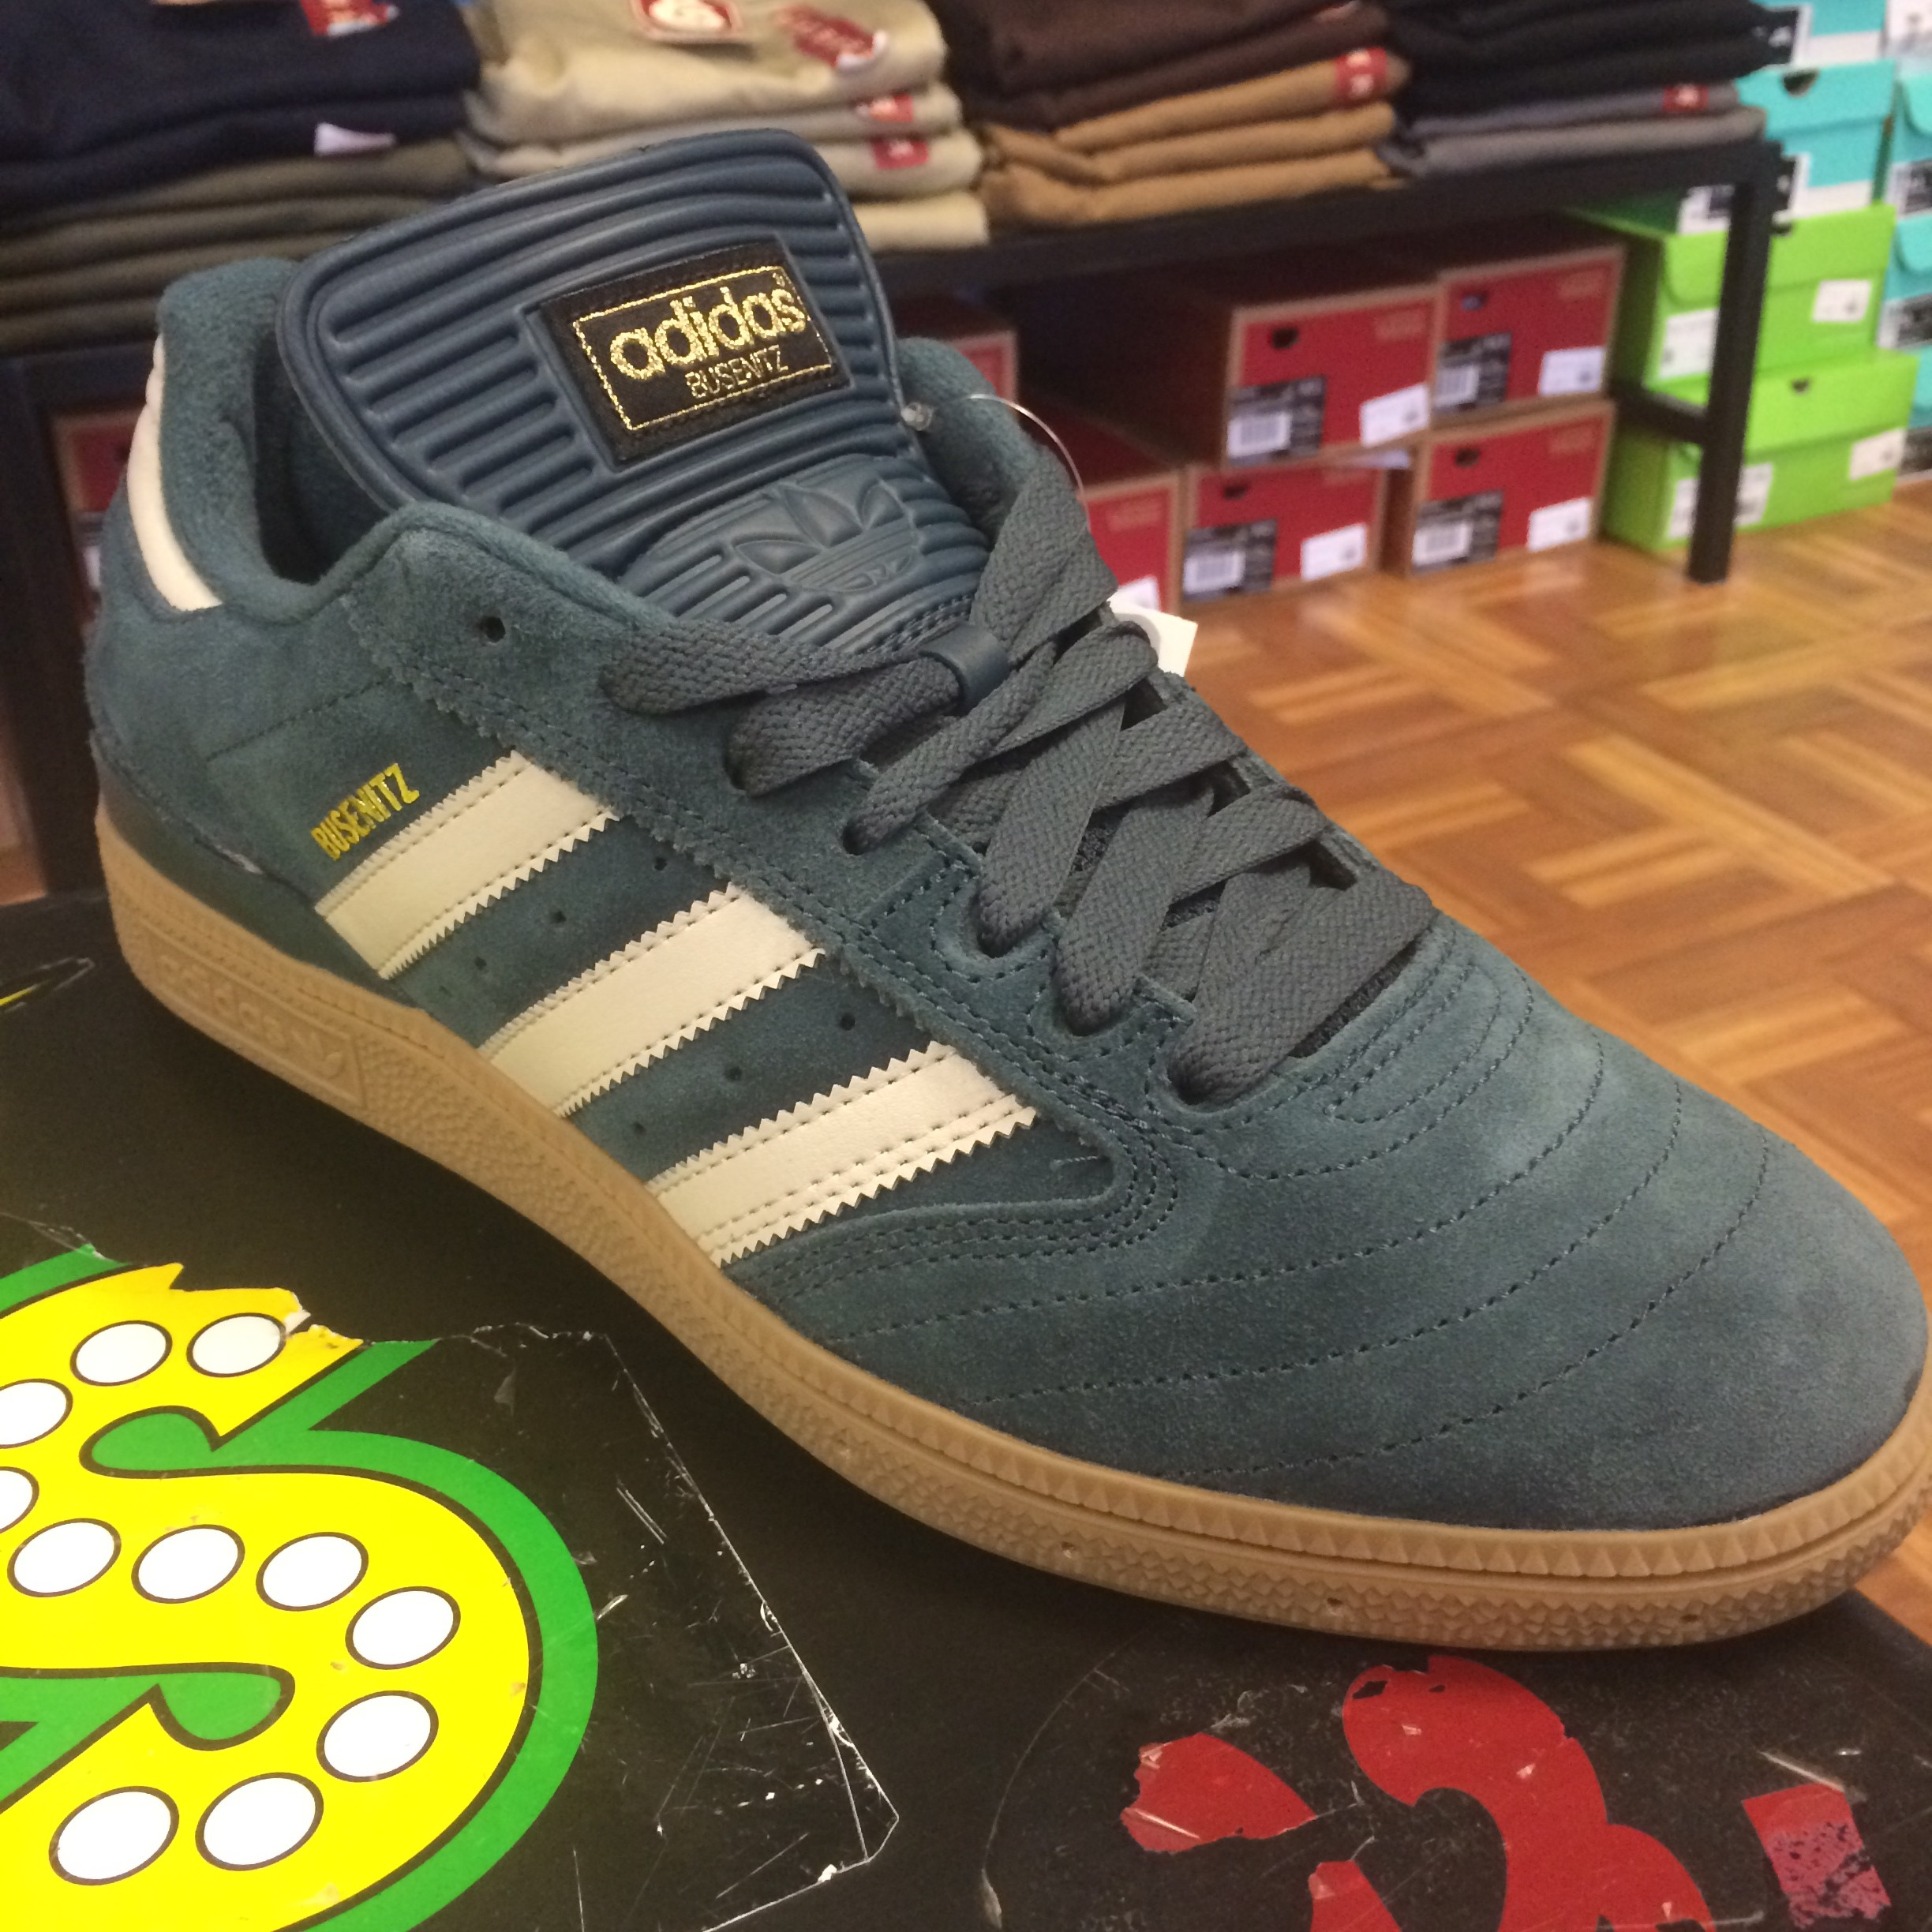 9120e2ac6a2 New At Our Parkville Location From Adidas Skateboarding Is The Mark Suciu  ADV   New Color Way Of The Dennis Busenitz Pro